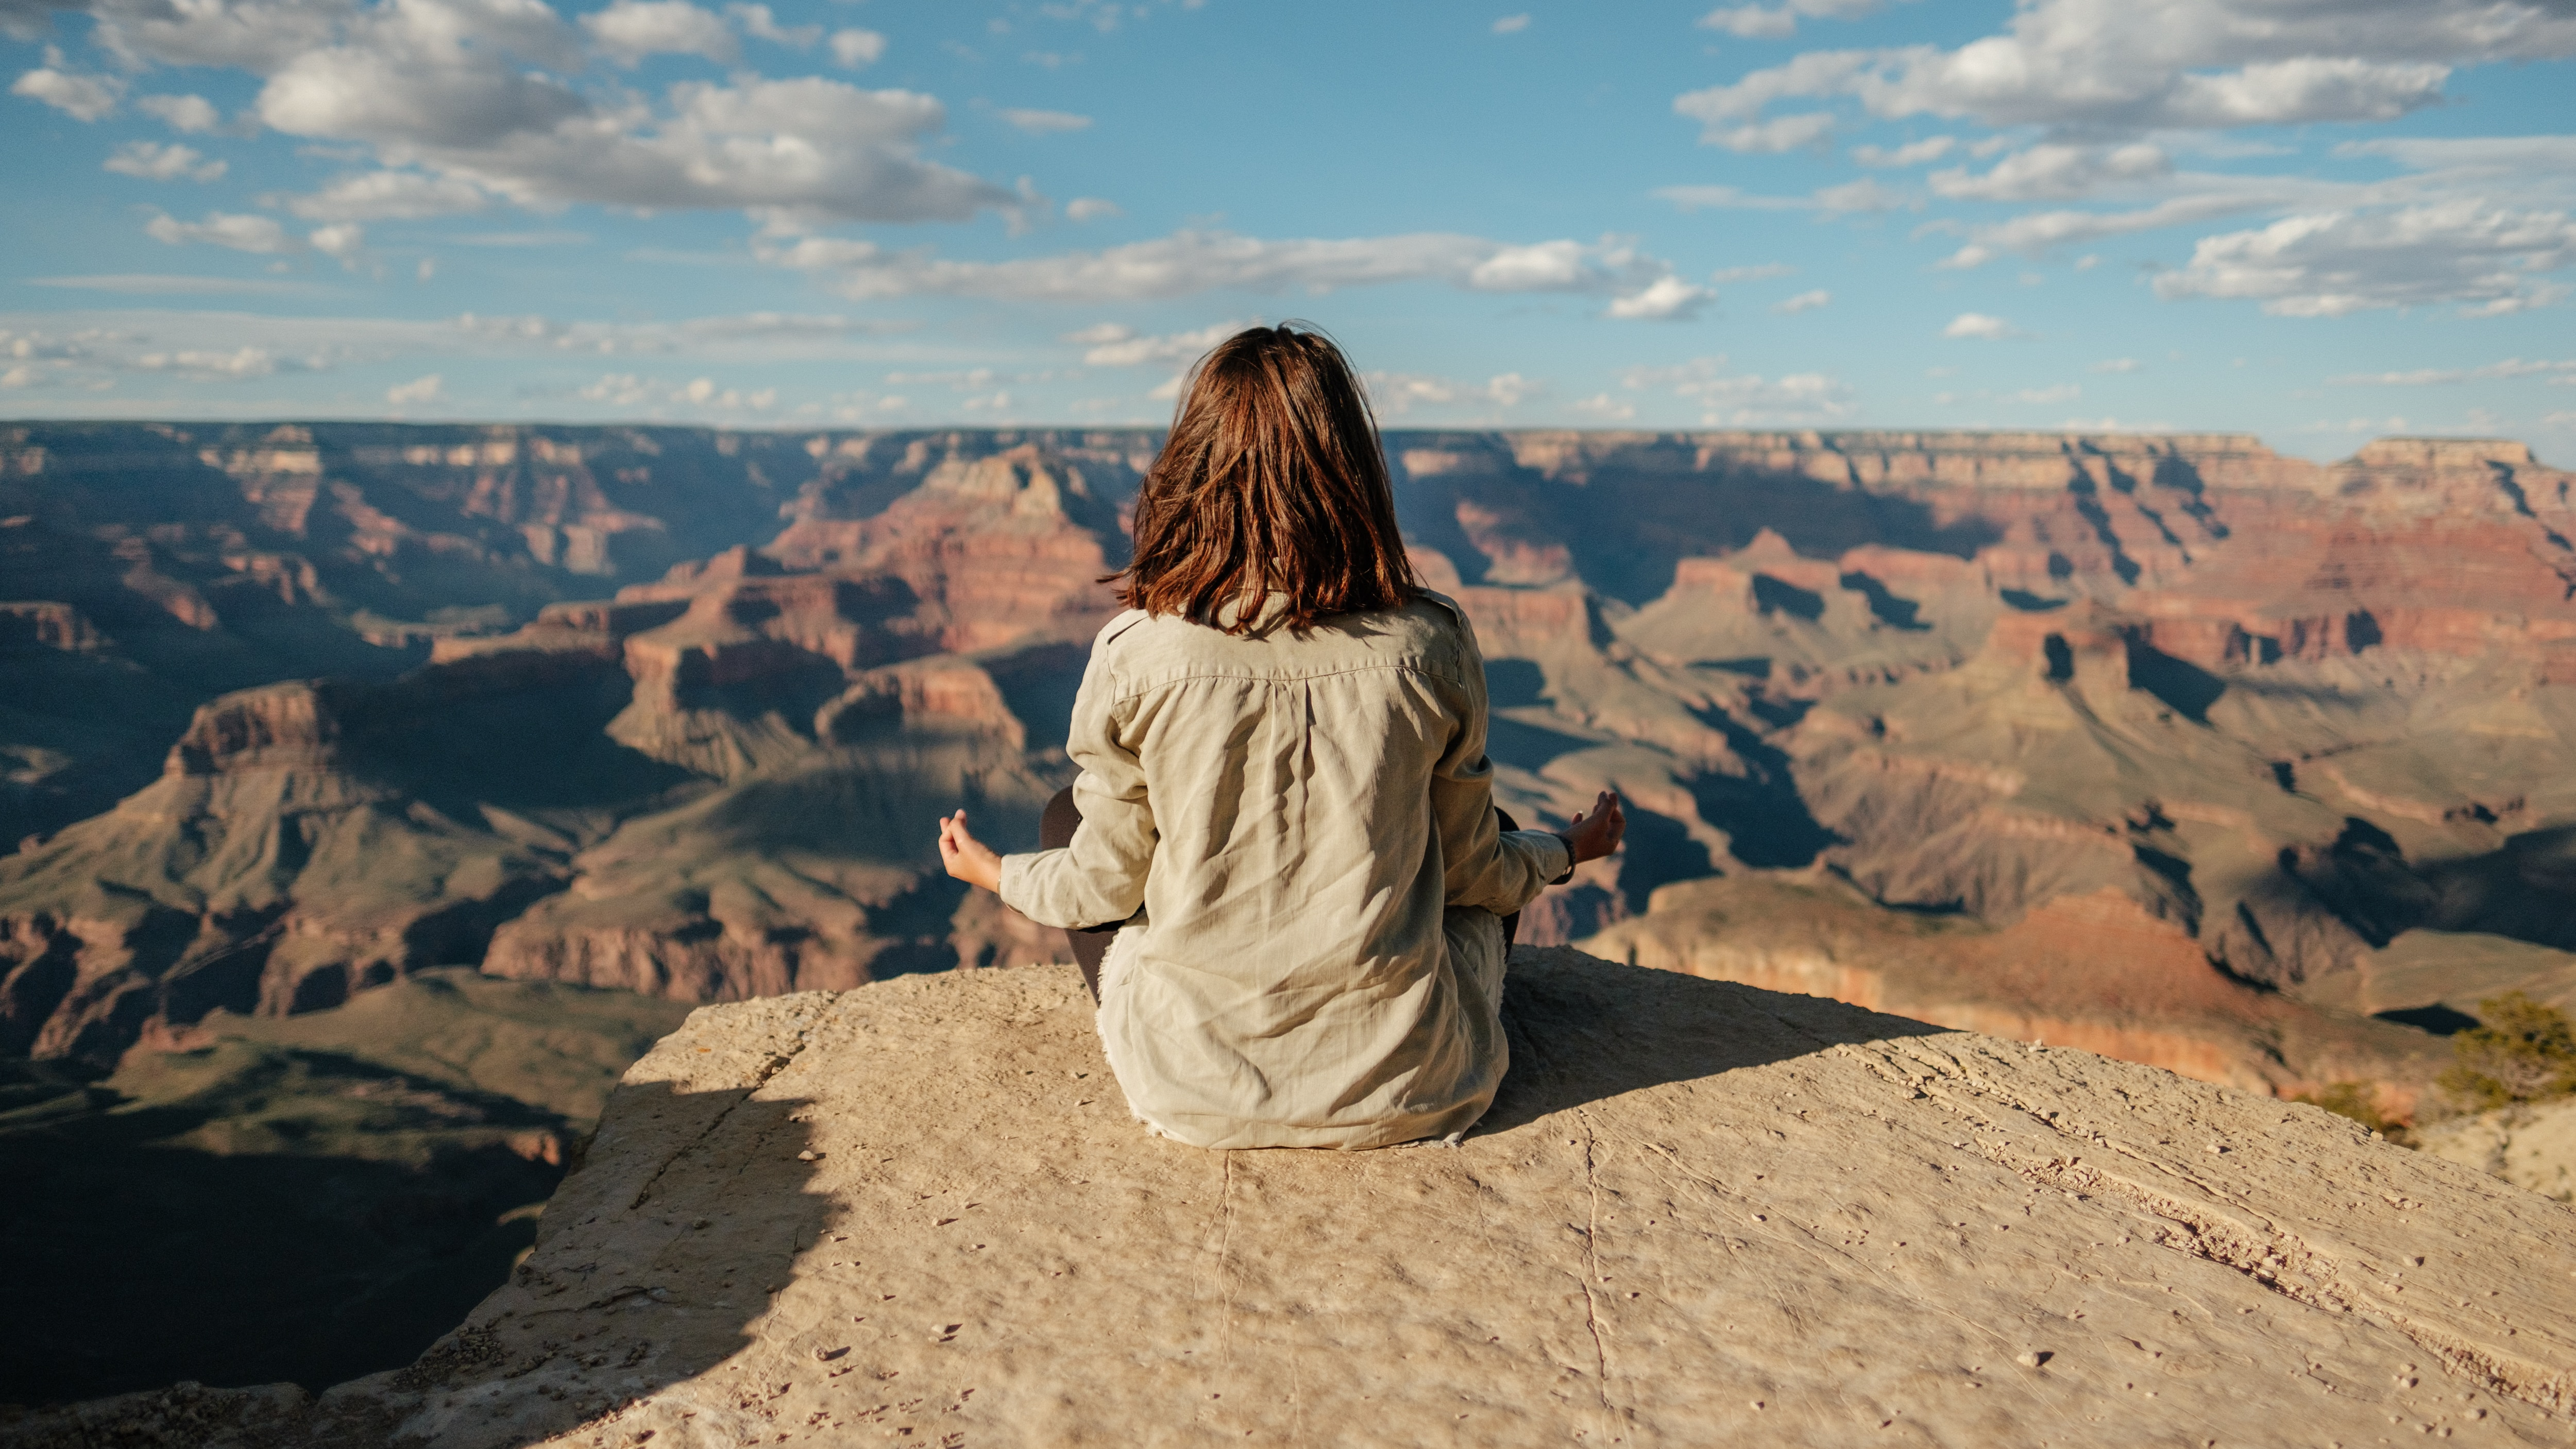 Why I Meditate: Benefits from a Consistent Meditation Practice